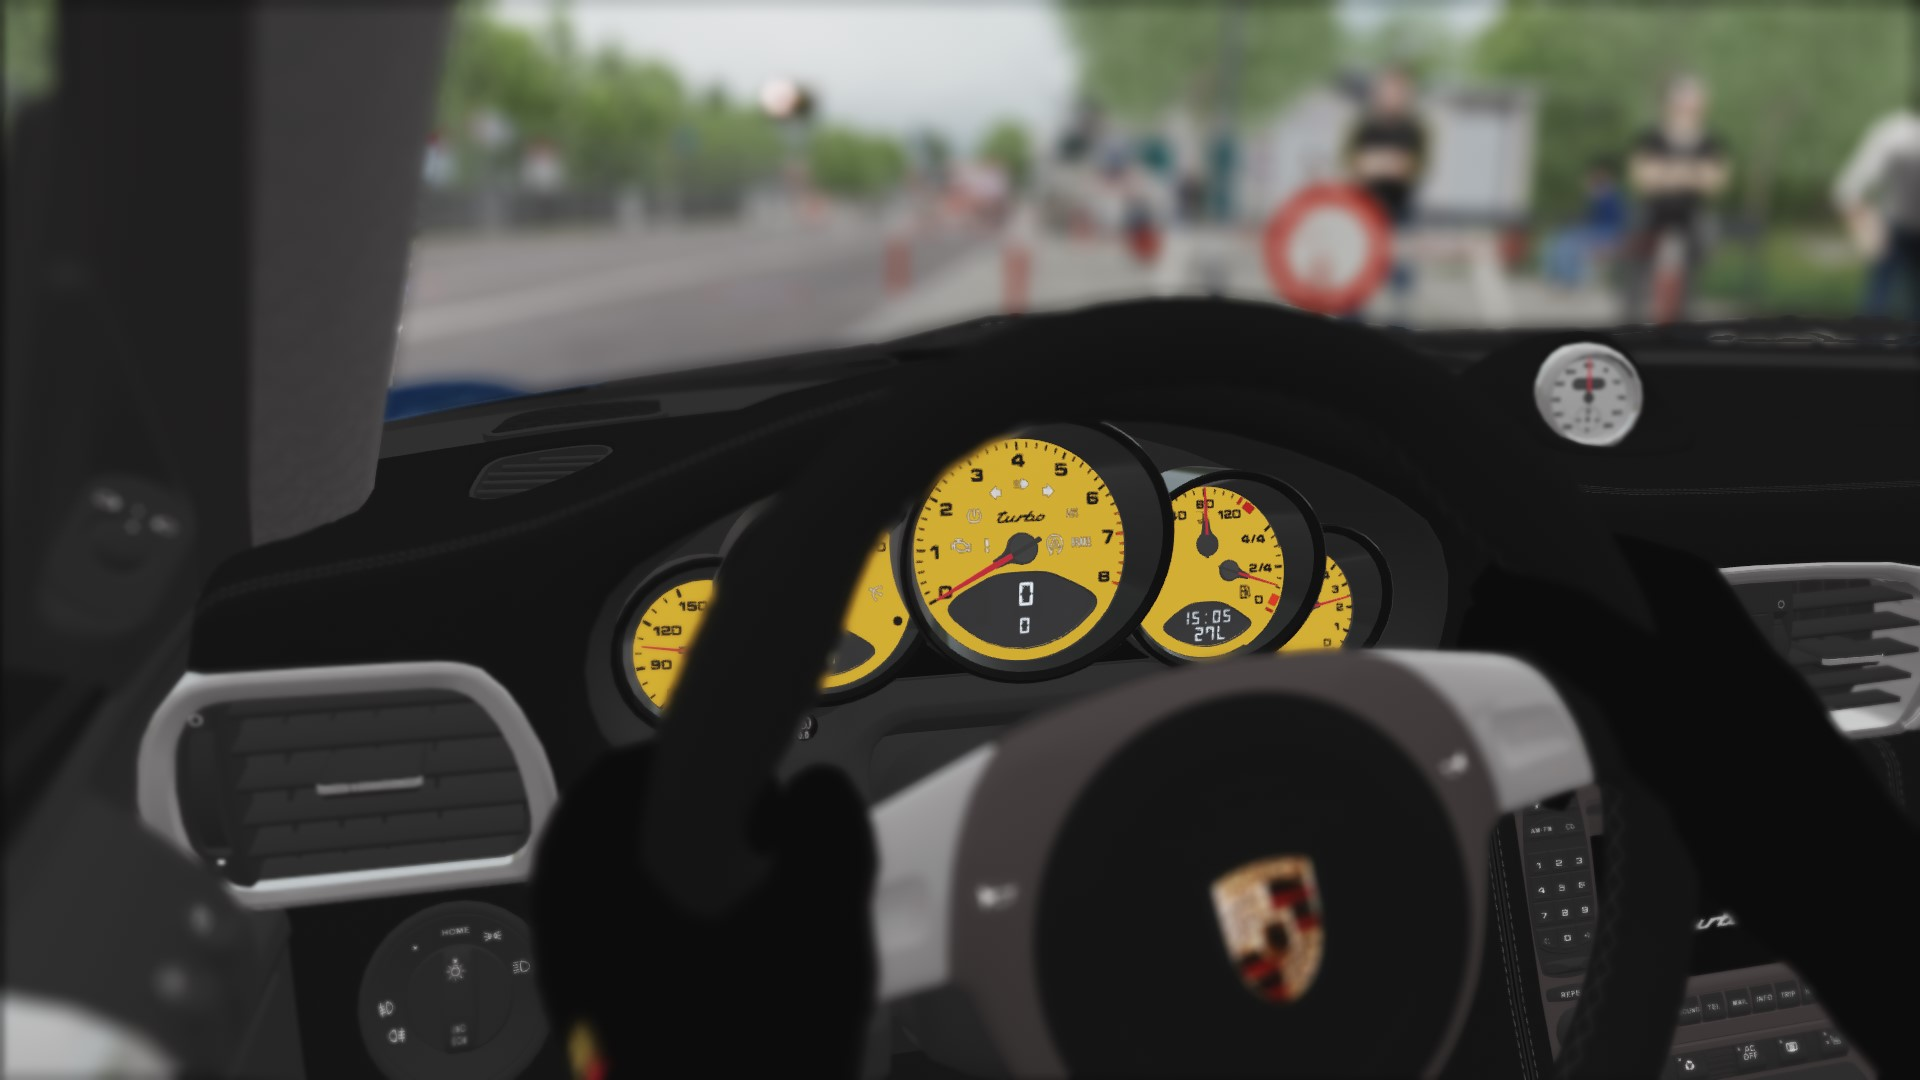 Screenshot_porsche_997turbo_ks_nordschleife_17-8-115-14-54-20.jpg